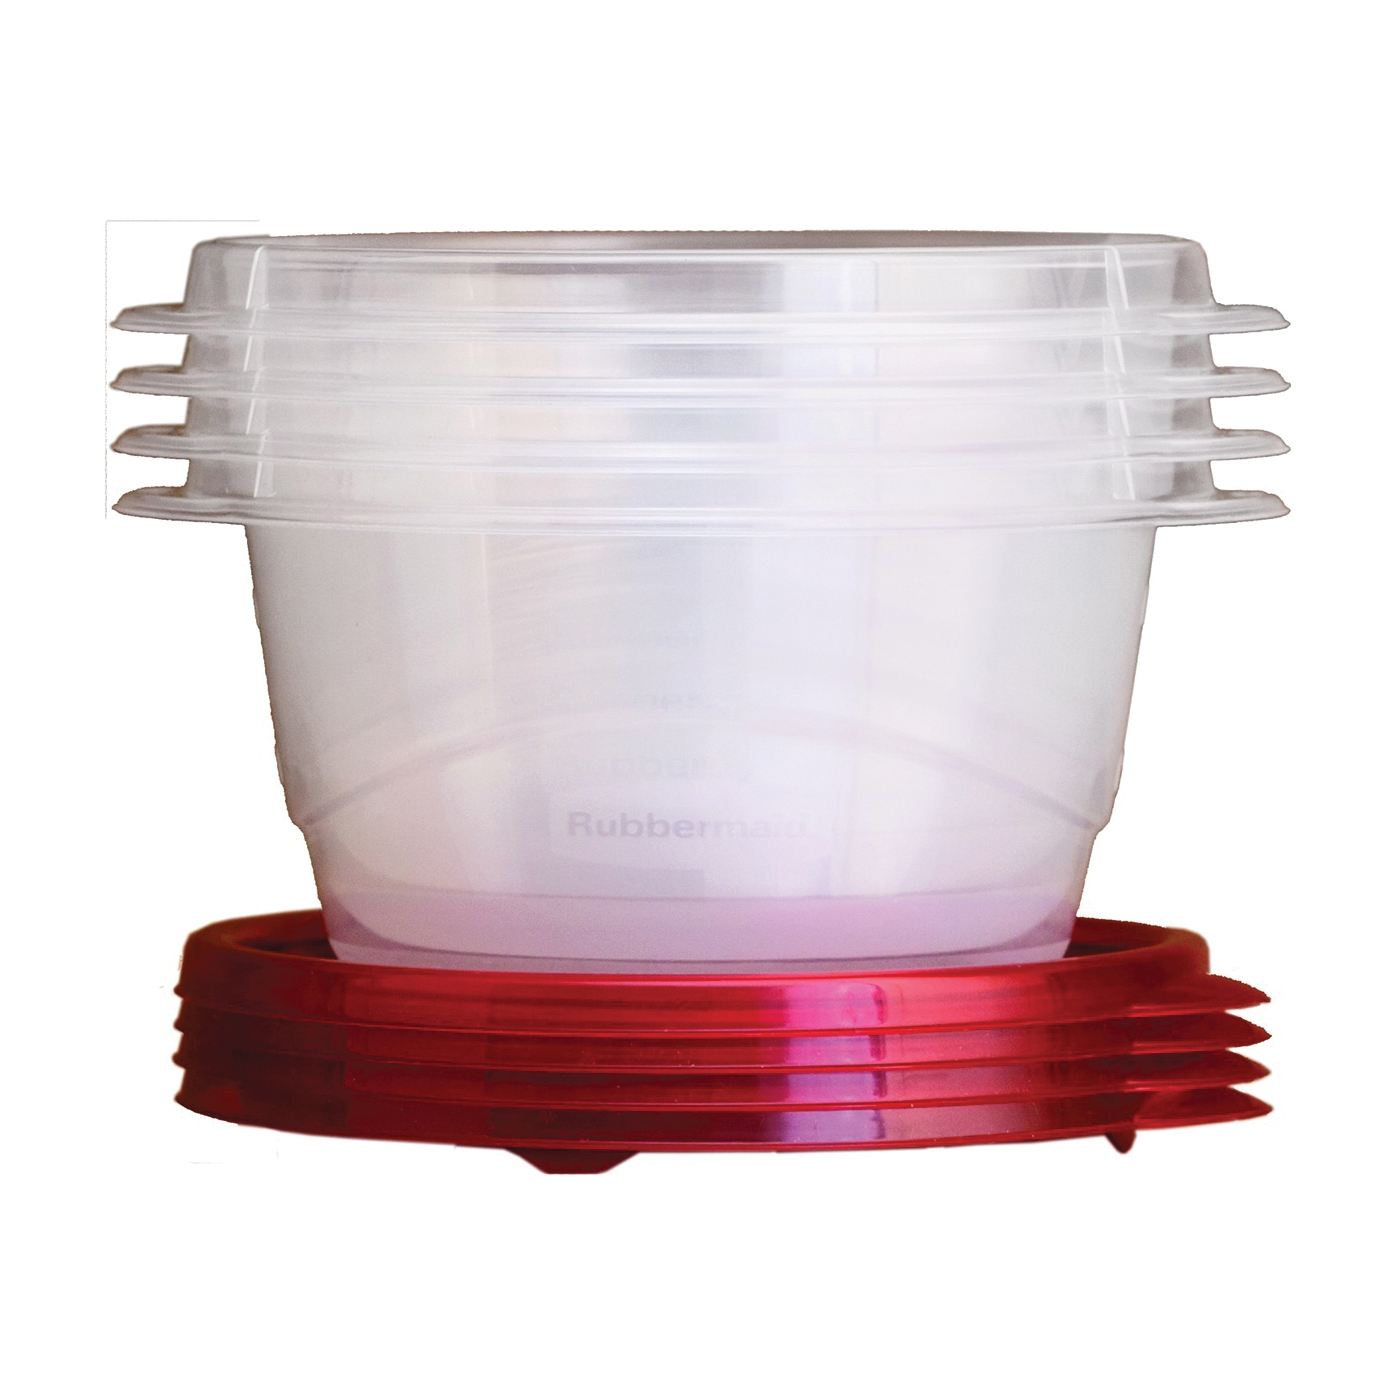 Picture of Rubbermaid Take Alongs 7F52RETCHIL Food Storage Container Set, 3.2 Cups Capacity, Clear, 6 in L, 7 in W, 5 in H